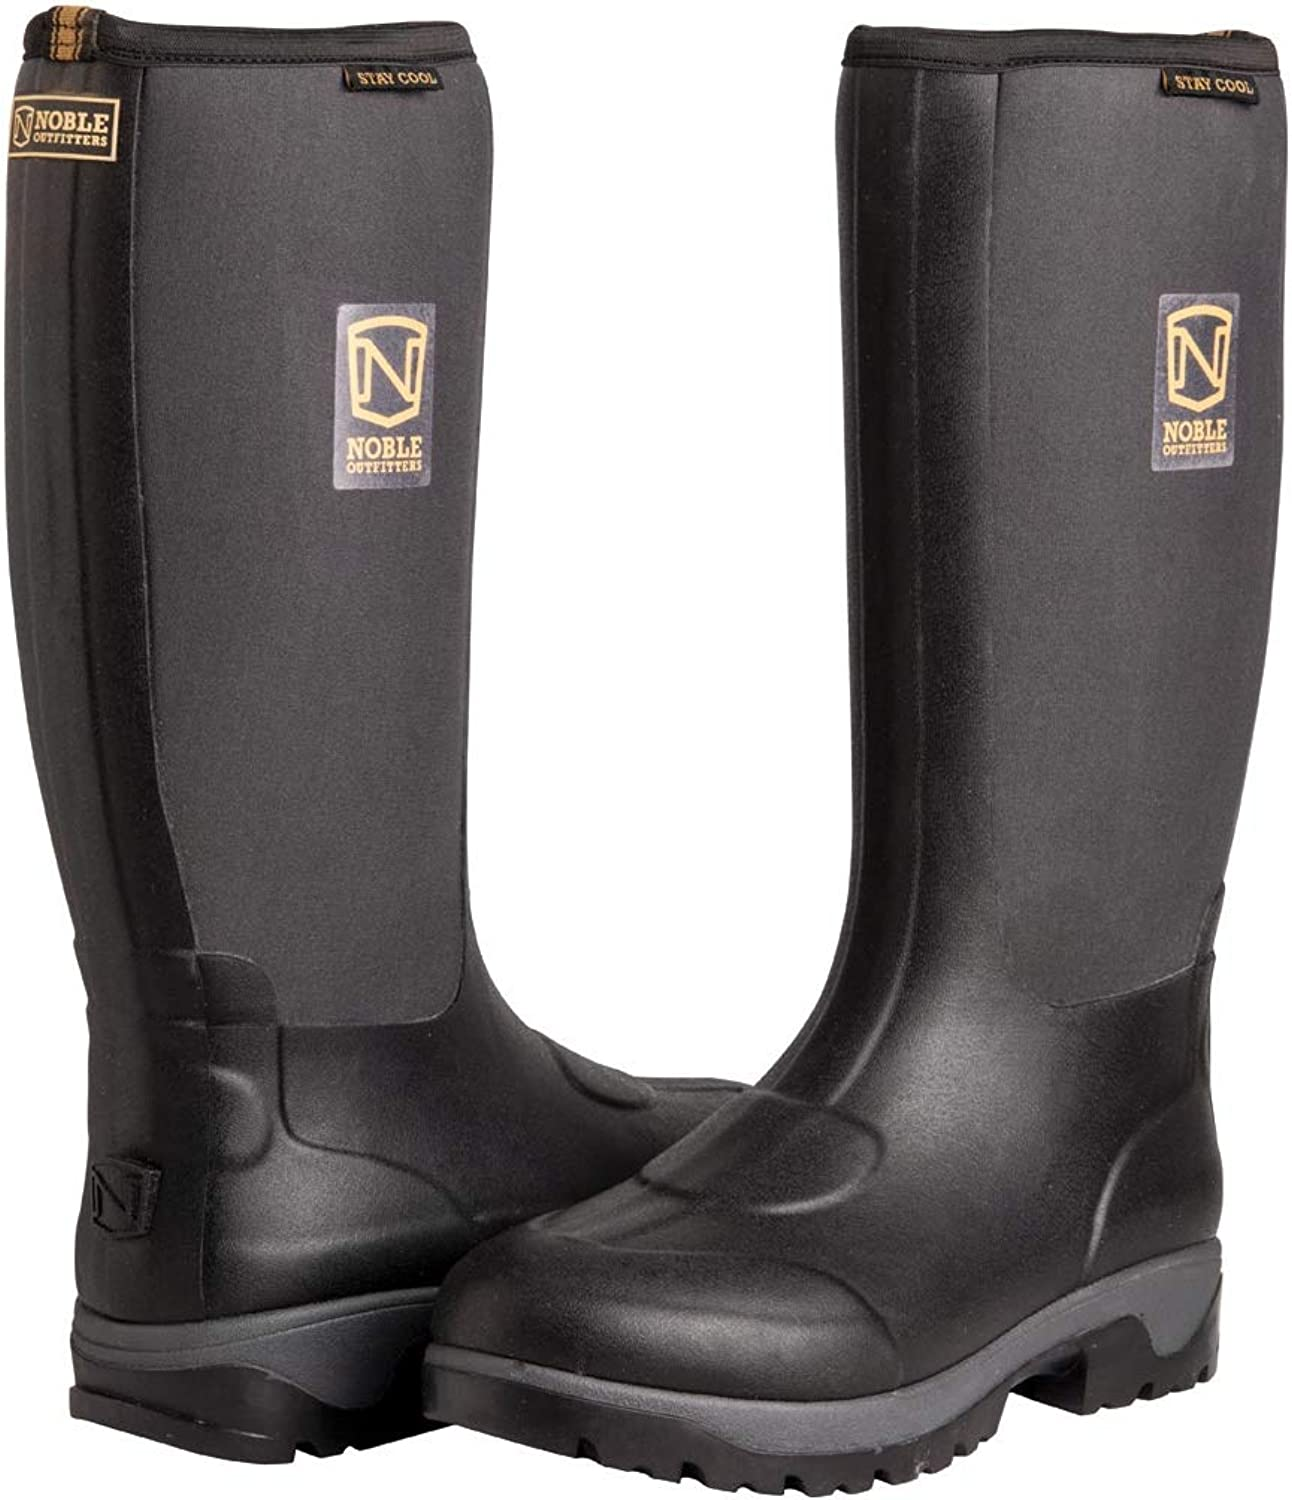 Noble Mens Muds Stay Cool High Waterproof Boots - Black